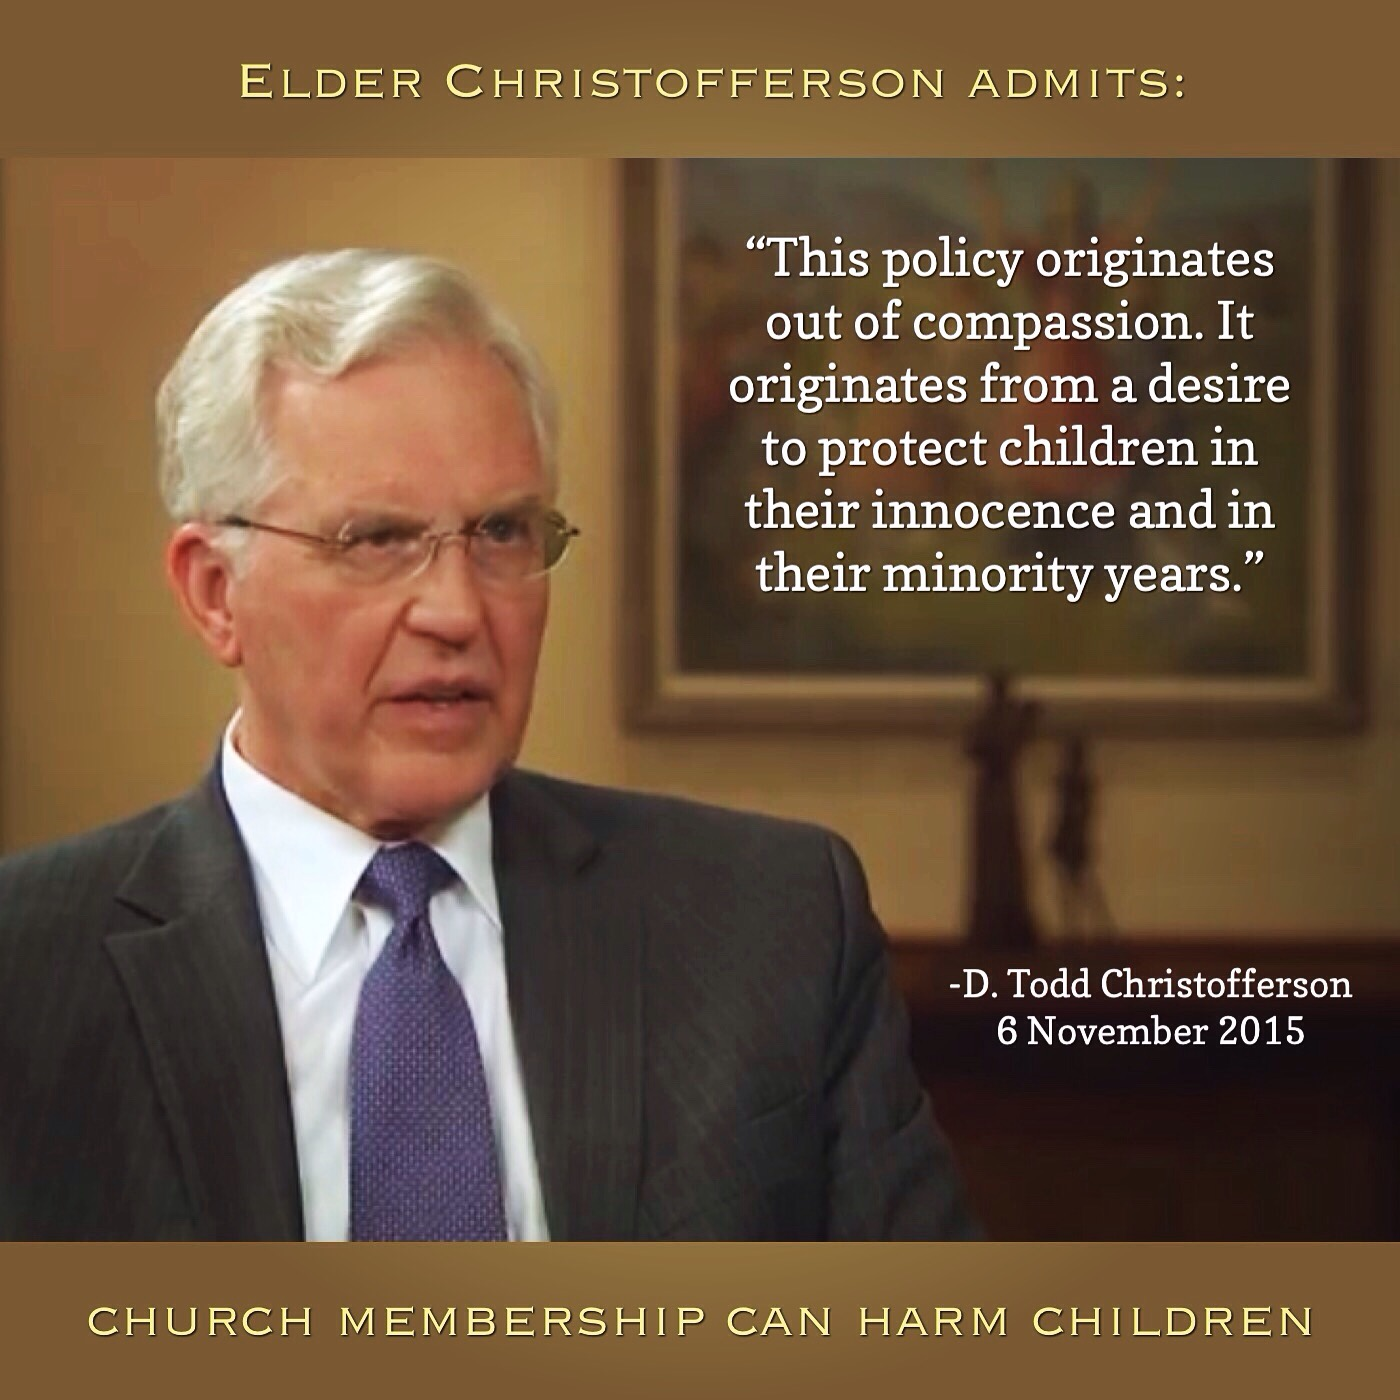 Church harms children